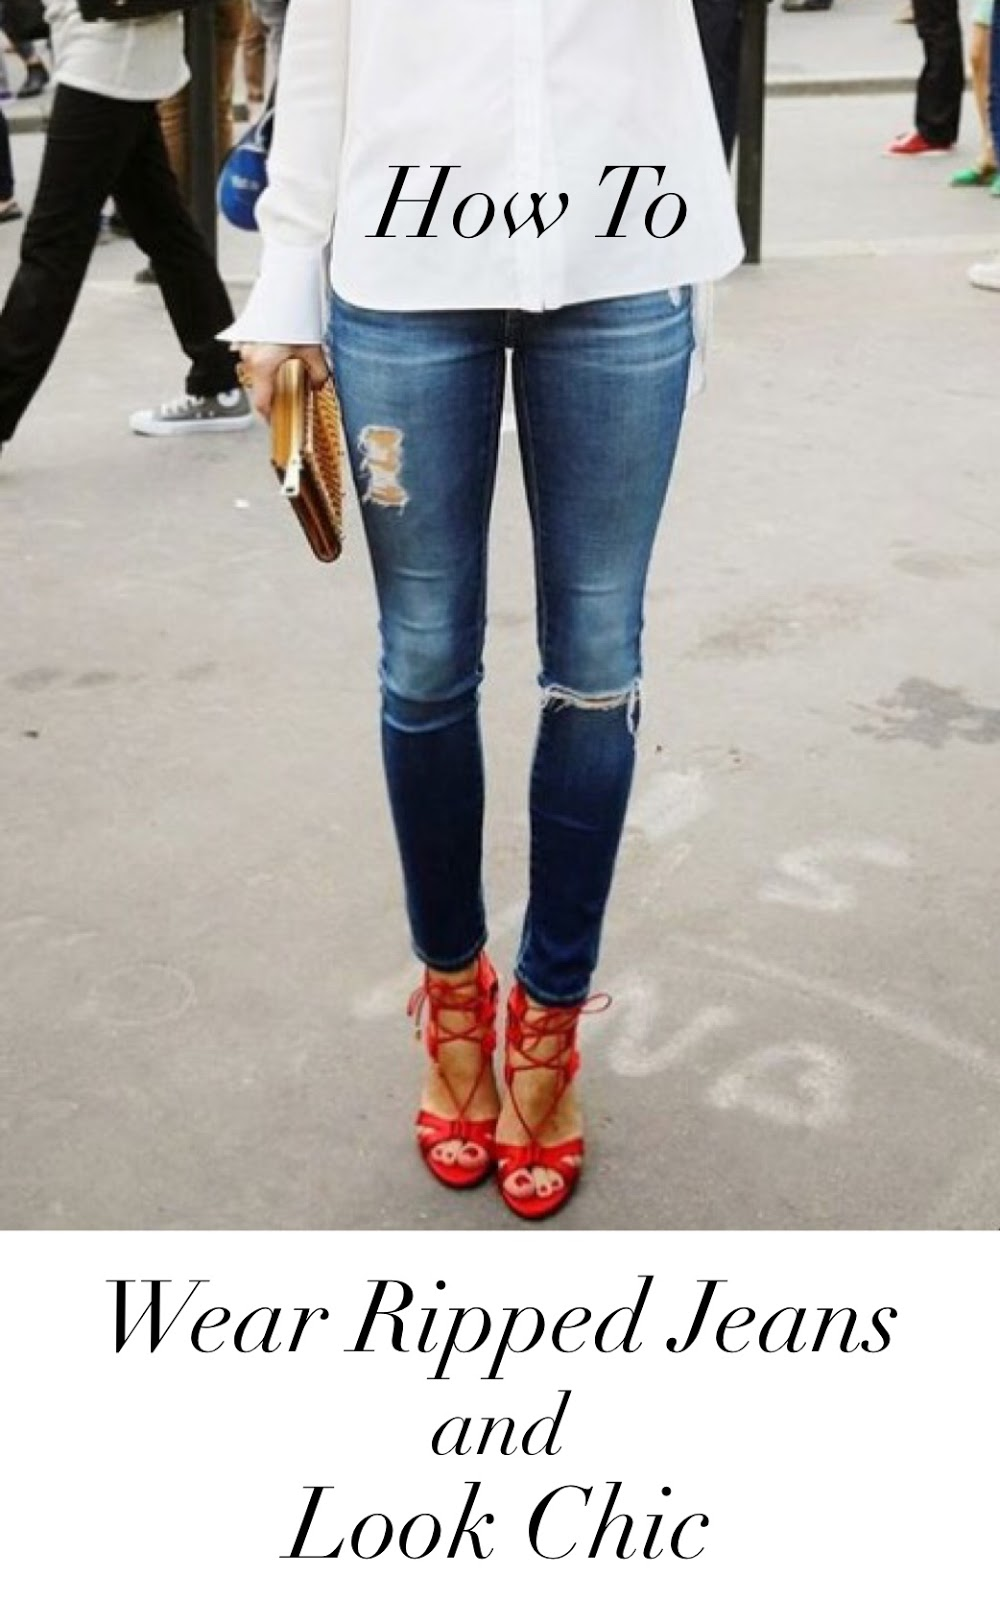 Woman wearing white shirt with ripped jeans and red heels